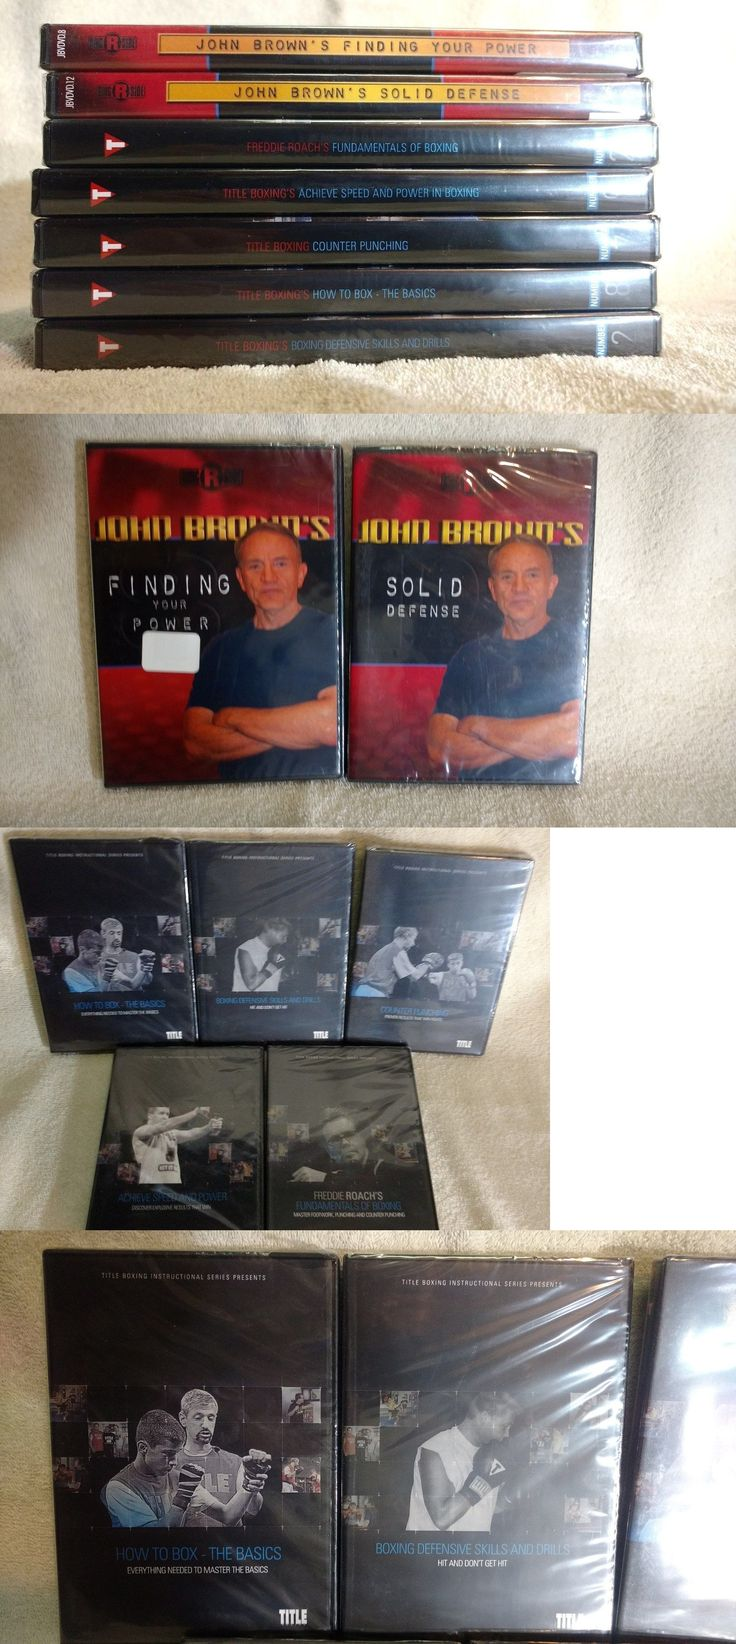 DVDs Videos and Books 73991: Freddie Roach And John Brown Title Boxing Training Dvd Set Lot (7) New -> BUY IT NOW ONLY: $72.5 on eBay!